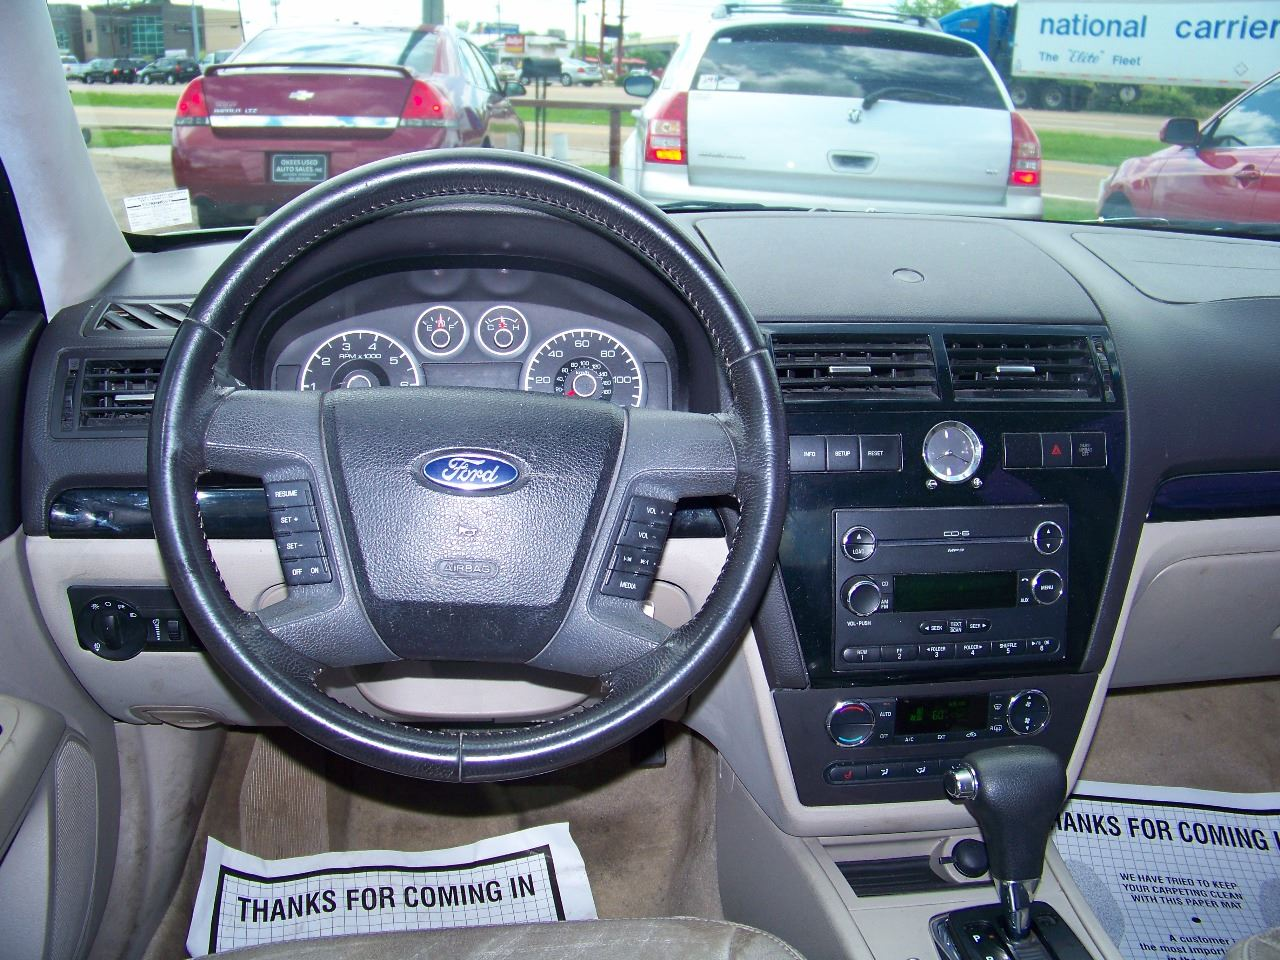 Ford ford fusion v6 : 2008 Ford Fusion V6 SEL In Jackson MS - Okees Used Auto Sales INC